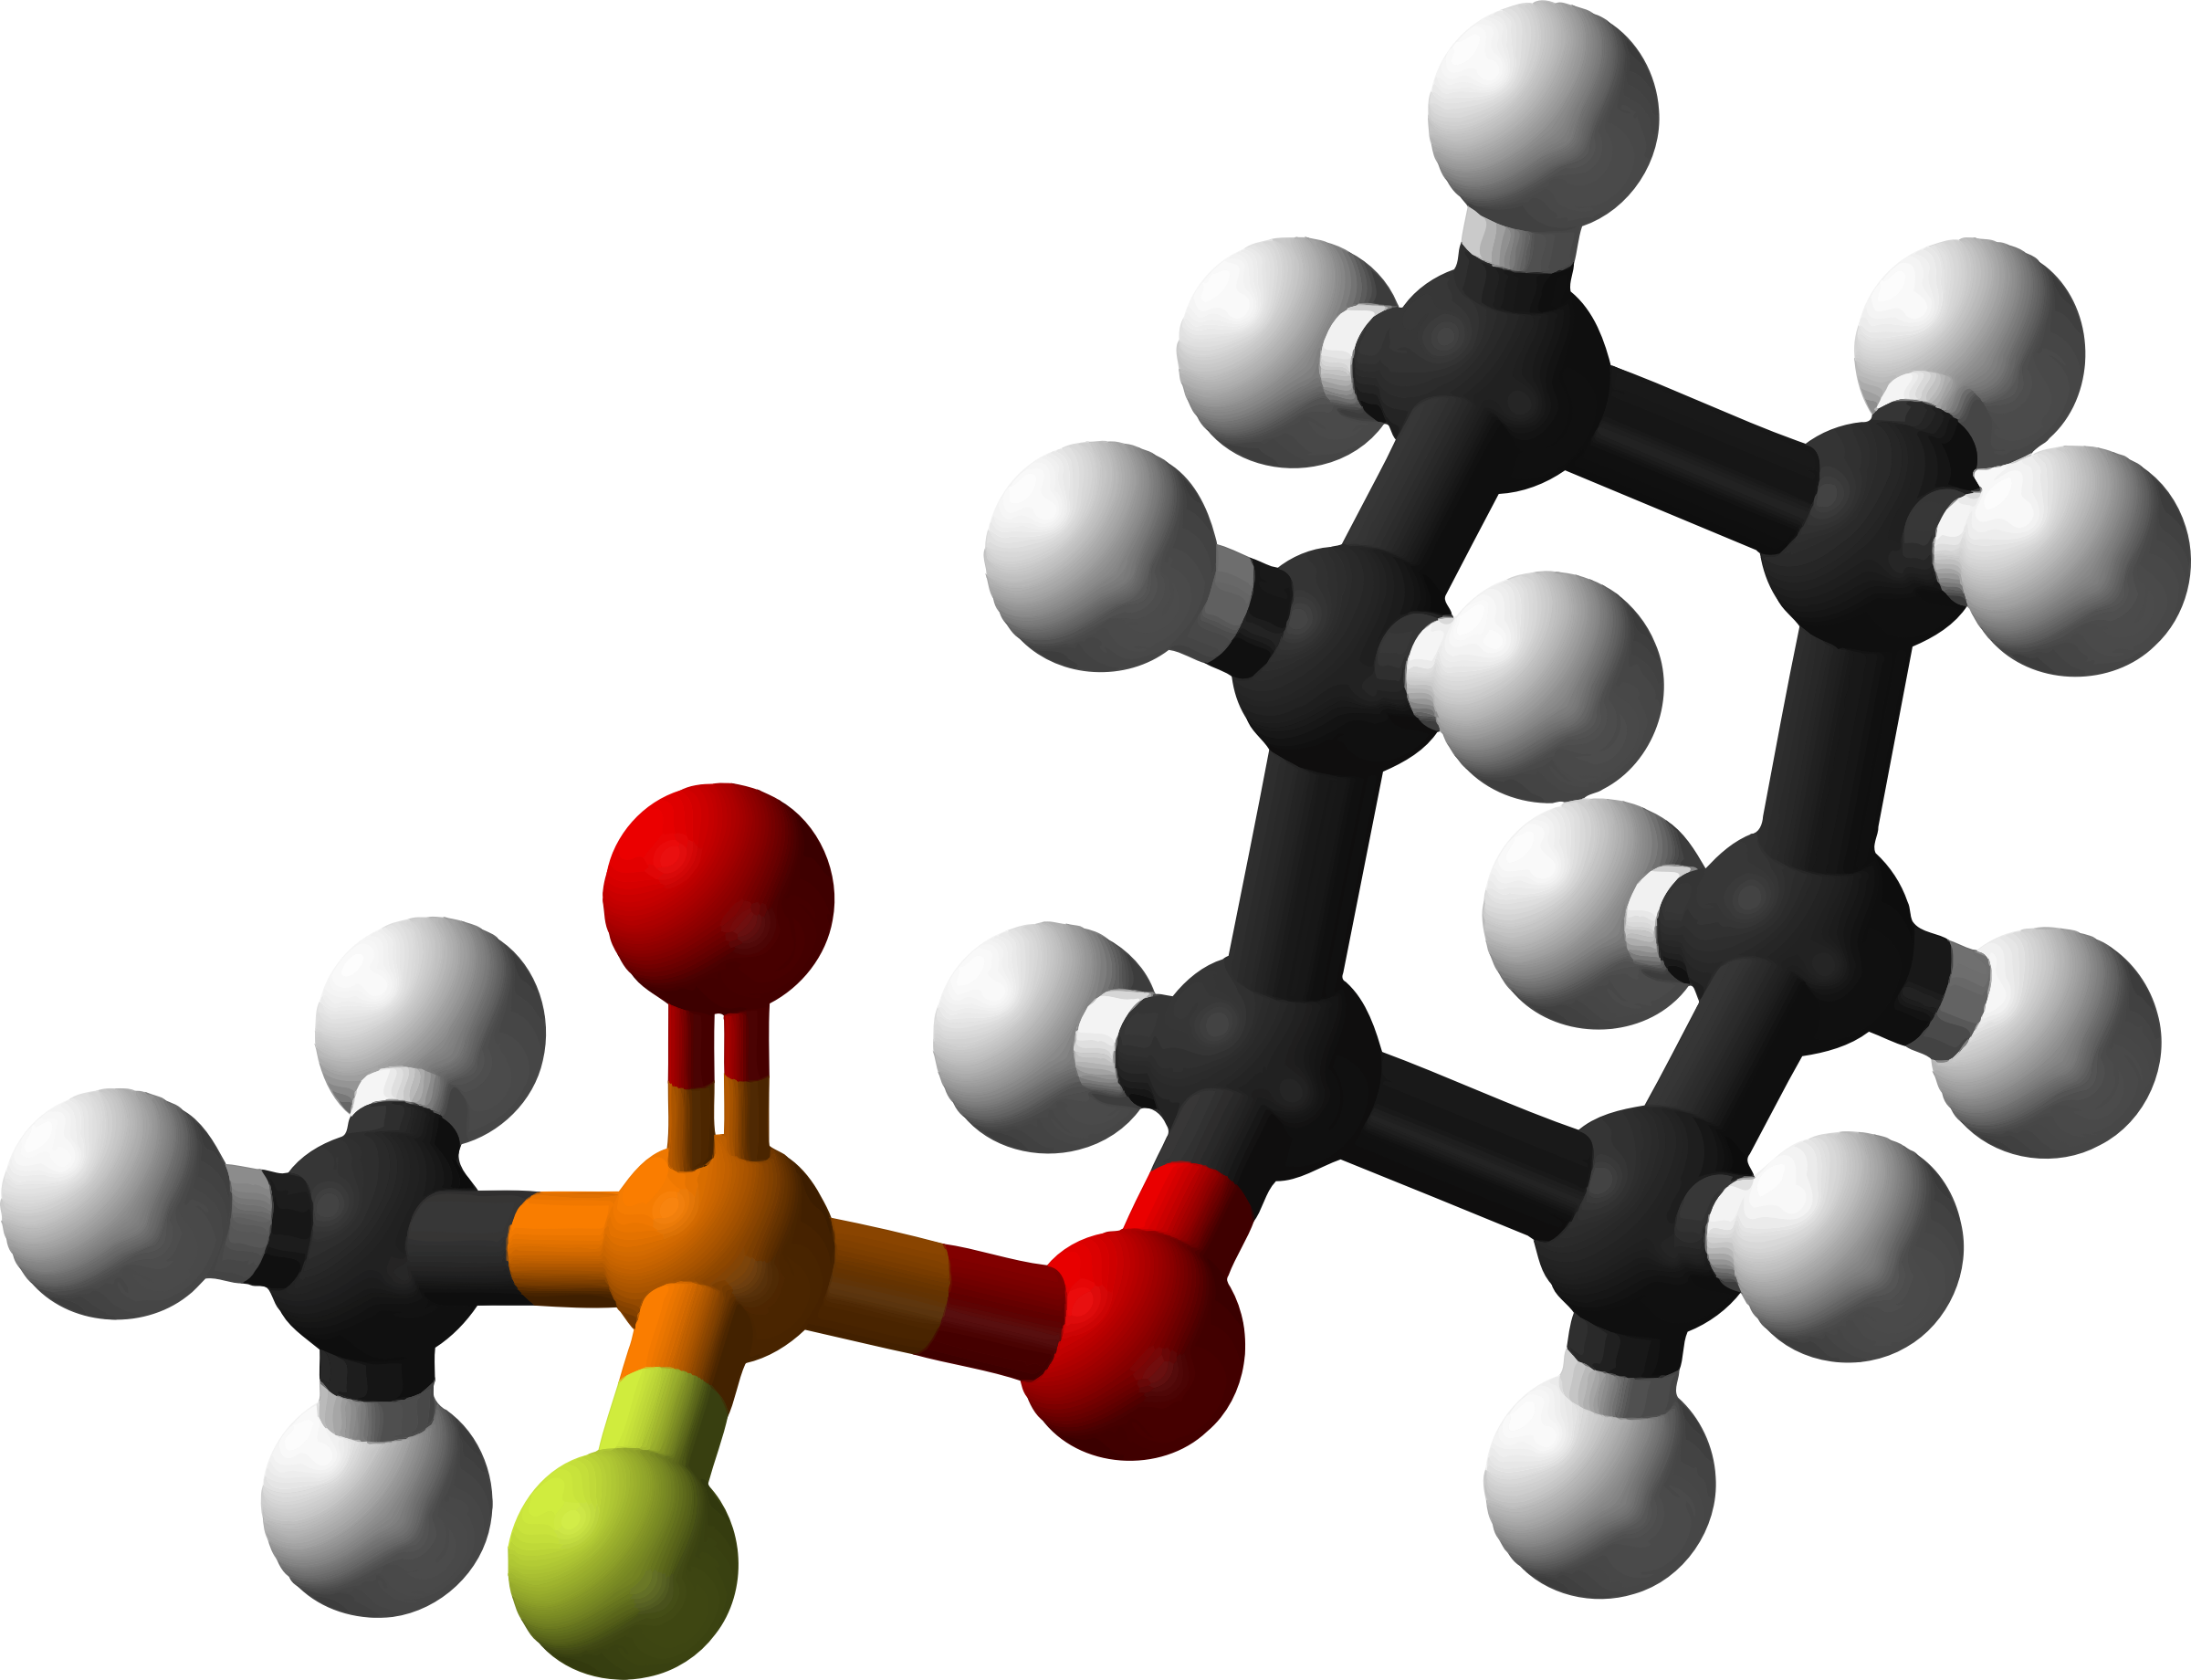 Famous (and infamous) molecules 42 - cyclosarin by Firkin